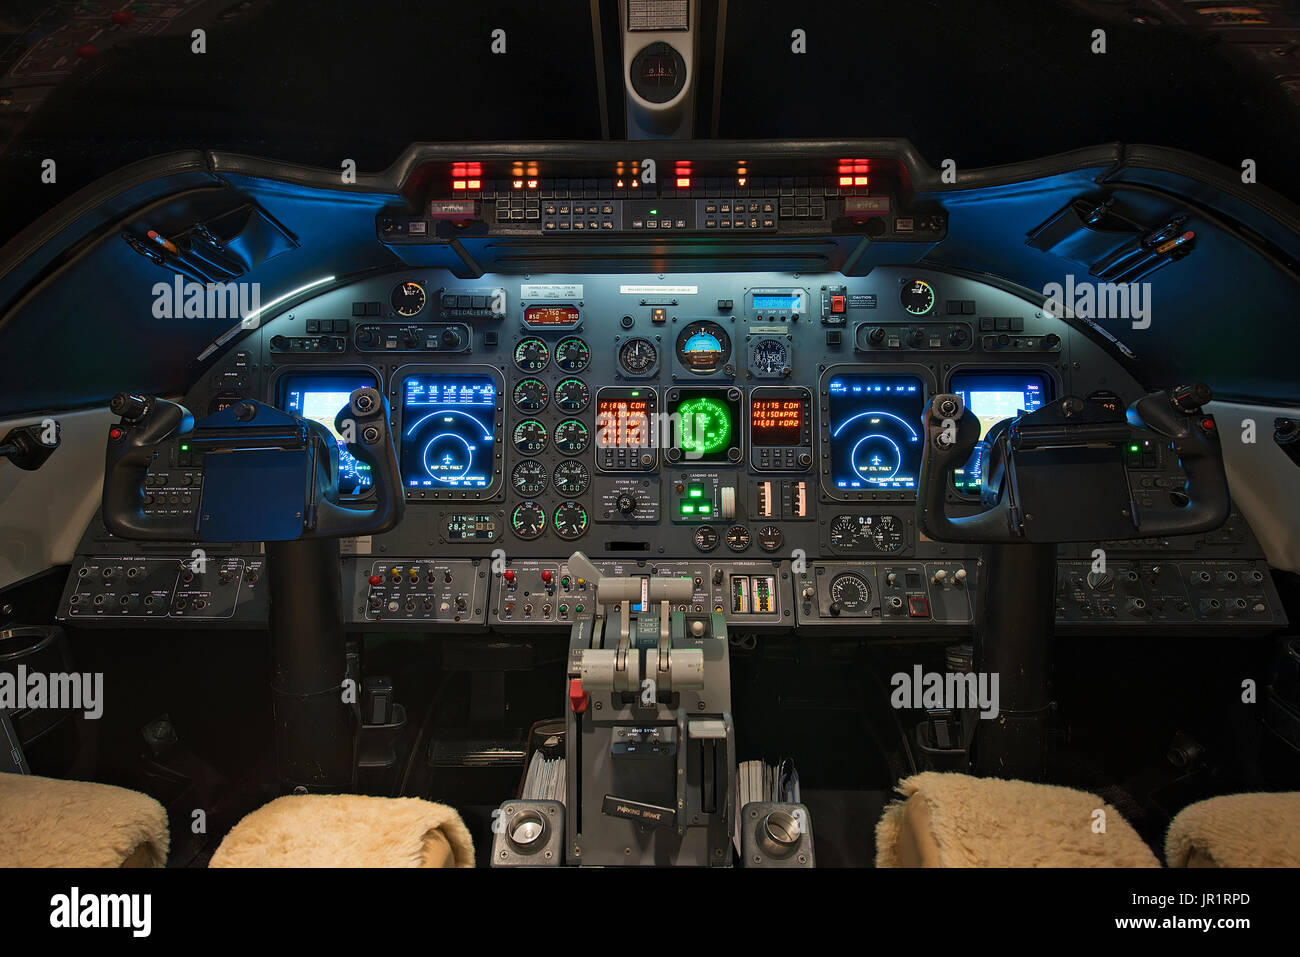 Lear 60 jet aircraft cockpit view - Stock Image